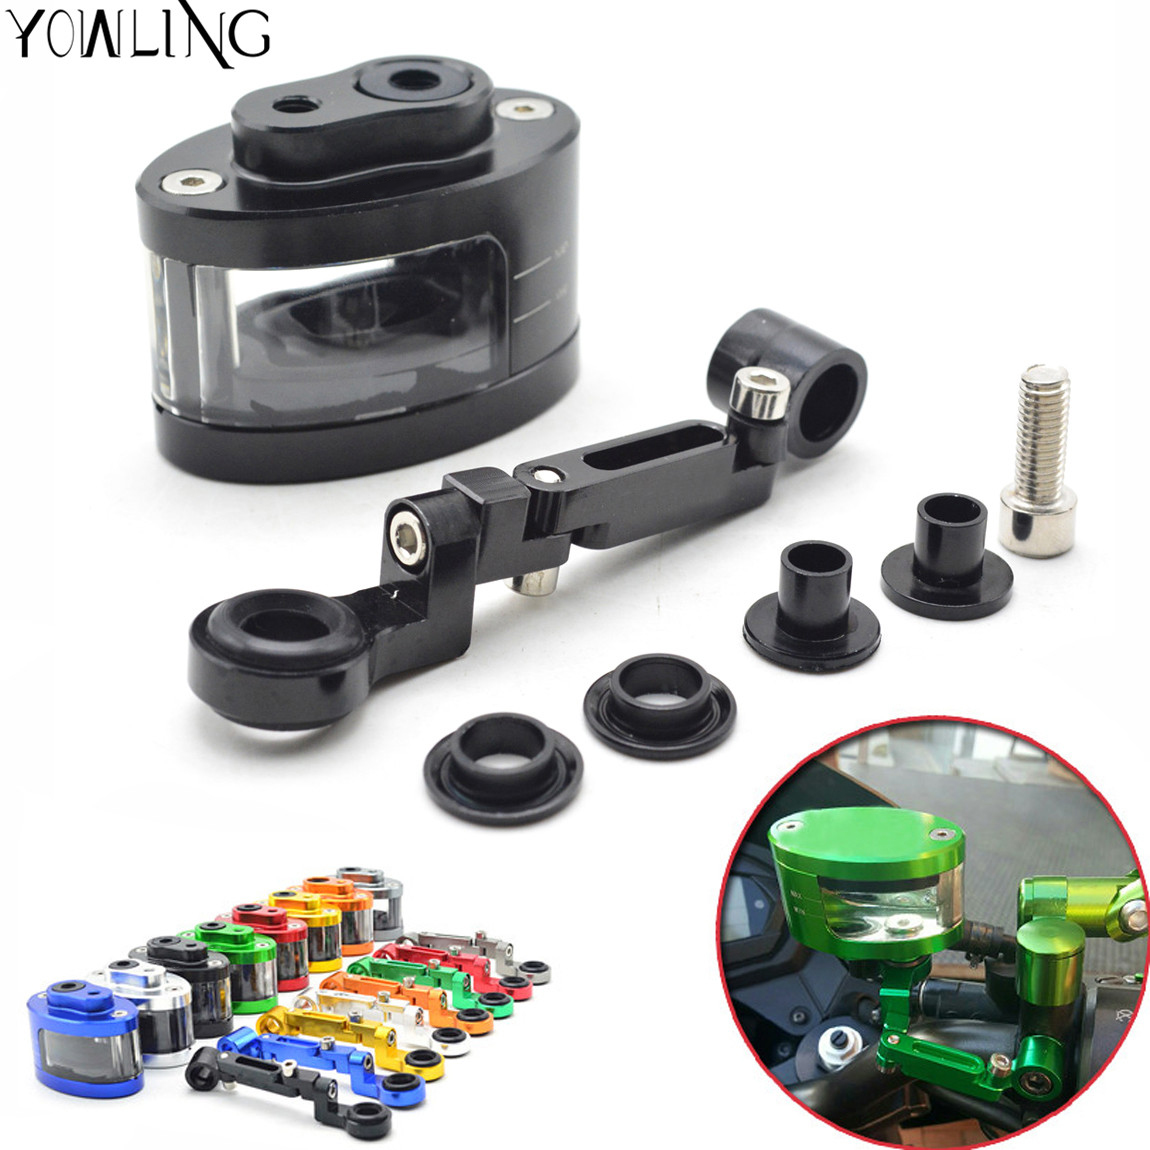 for Honda CB650F CB1000R CBR 600f4i CB400 CB1000RR Aprilia R3 R6 Motorcycle Front Brake Clutch Tank Cylinder Fluid Oil Reservoir motorcycle brake fluid reservoir clutch tank oil fluid cup for yamaha r3 r25 yzf r1 yzf r6 t max500 tmax530 mt09 xsr900 honda